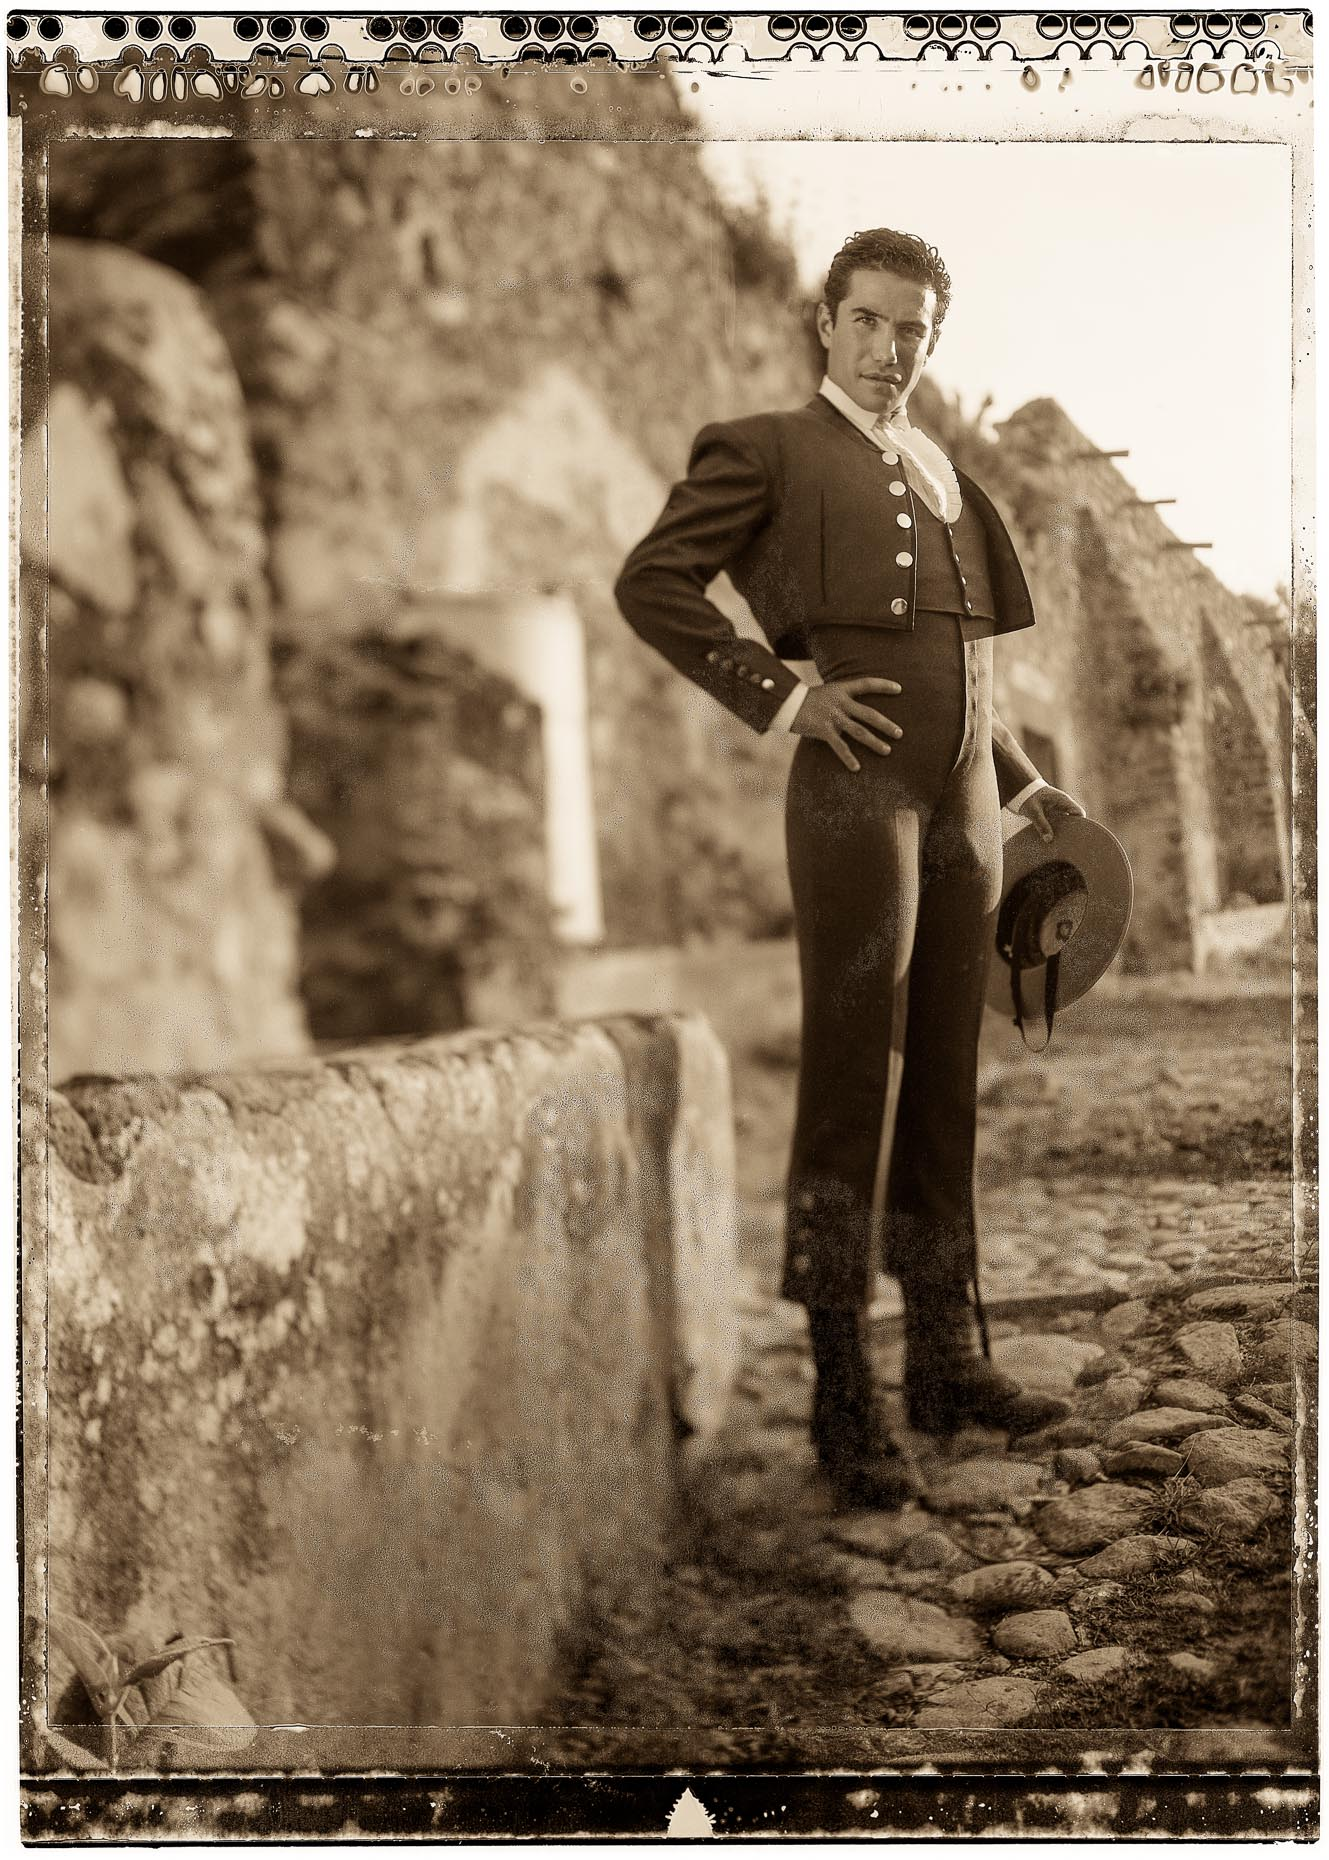 Sepia toned portrait of young Matador